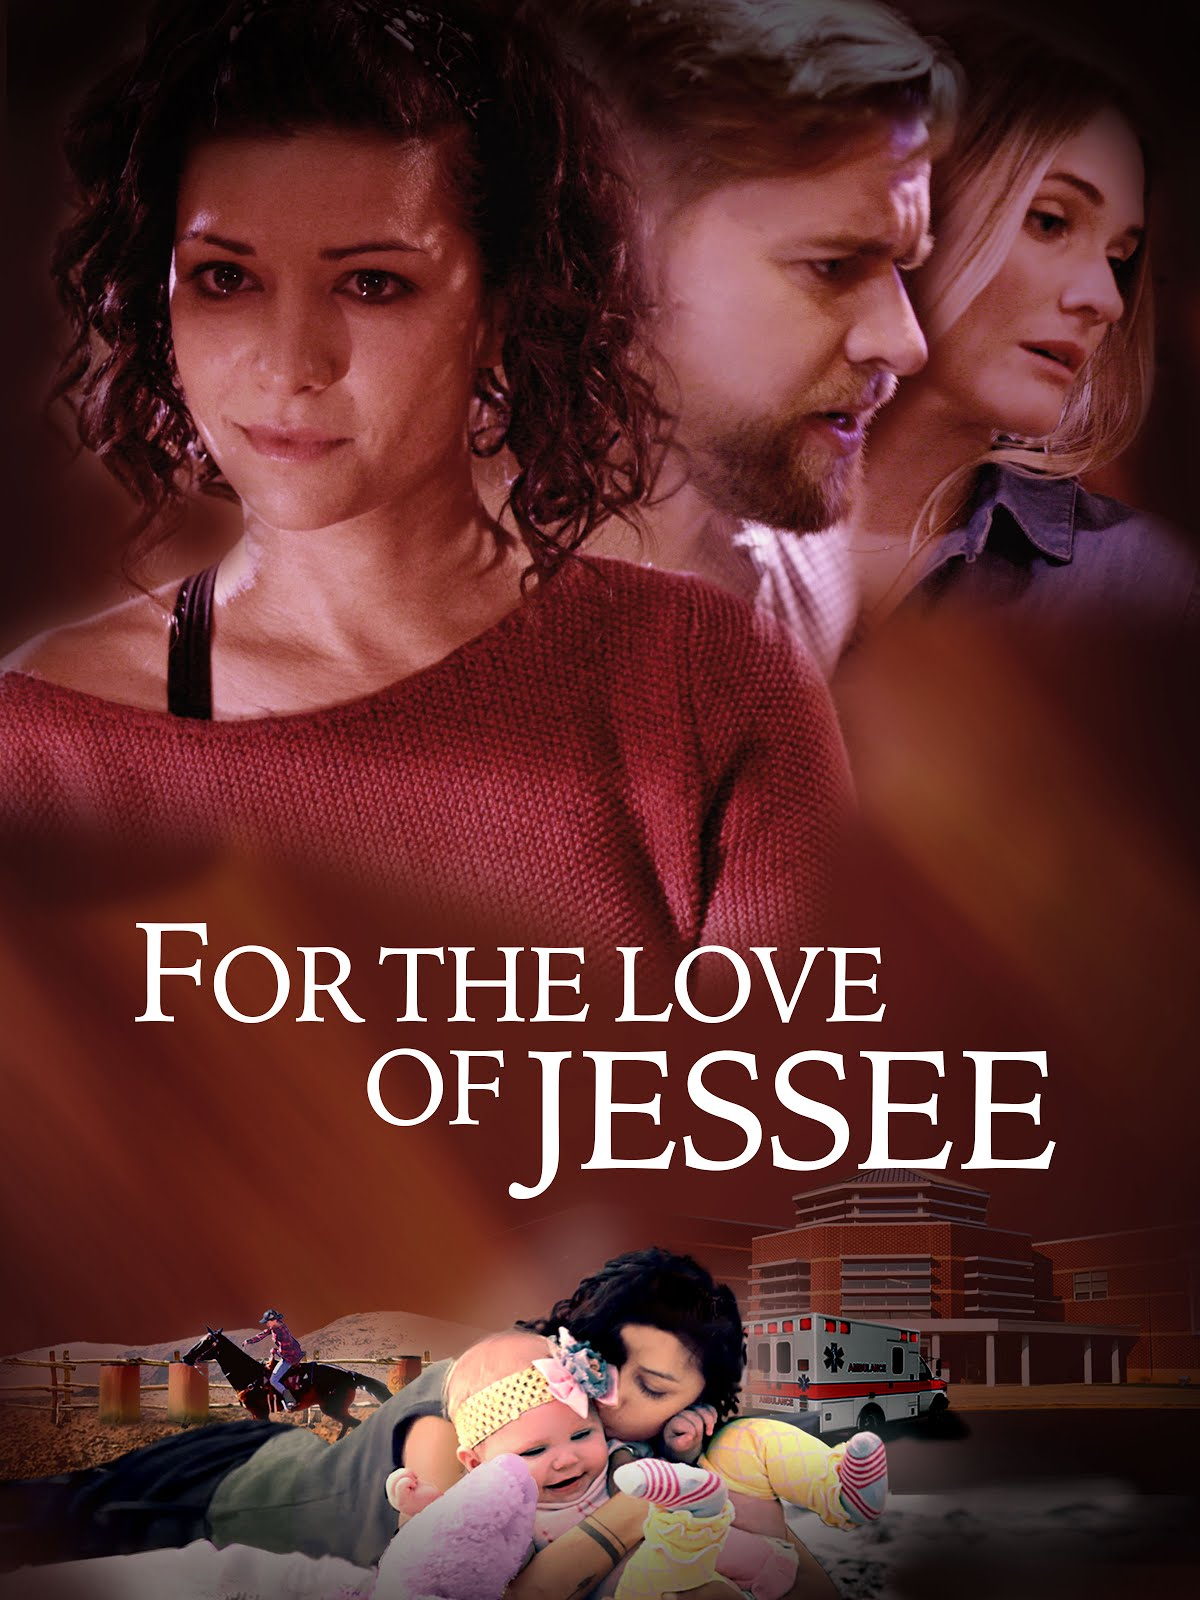 For the Love of Jessee 2020 English 300MB HDRip 480p